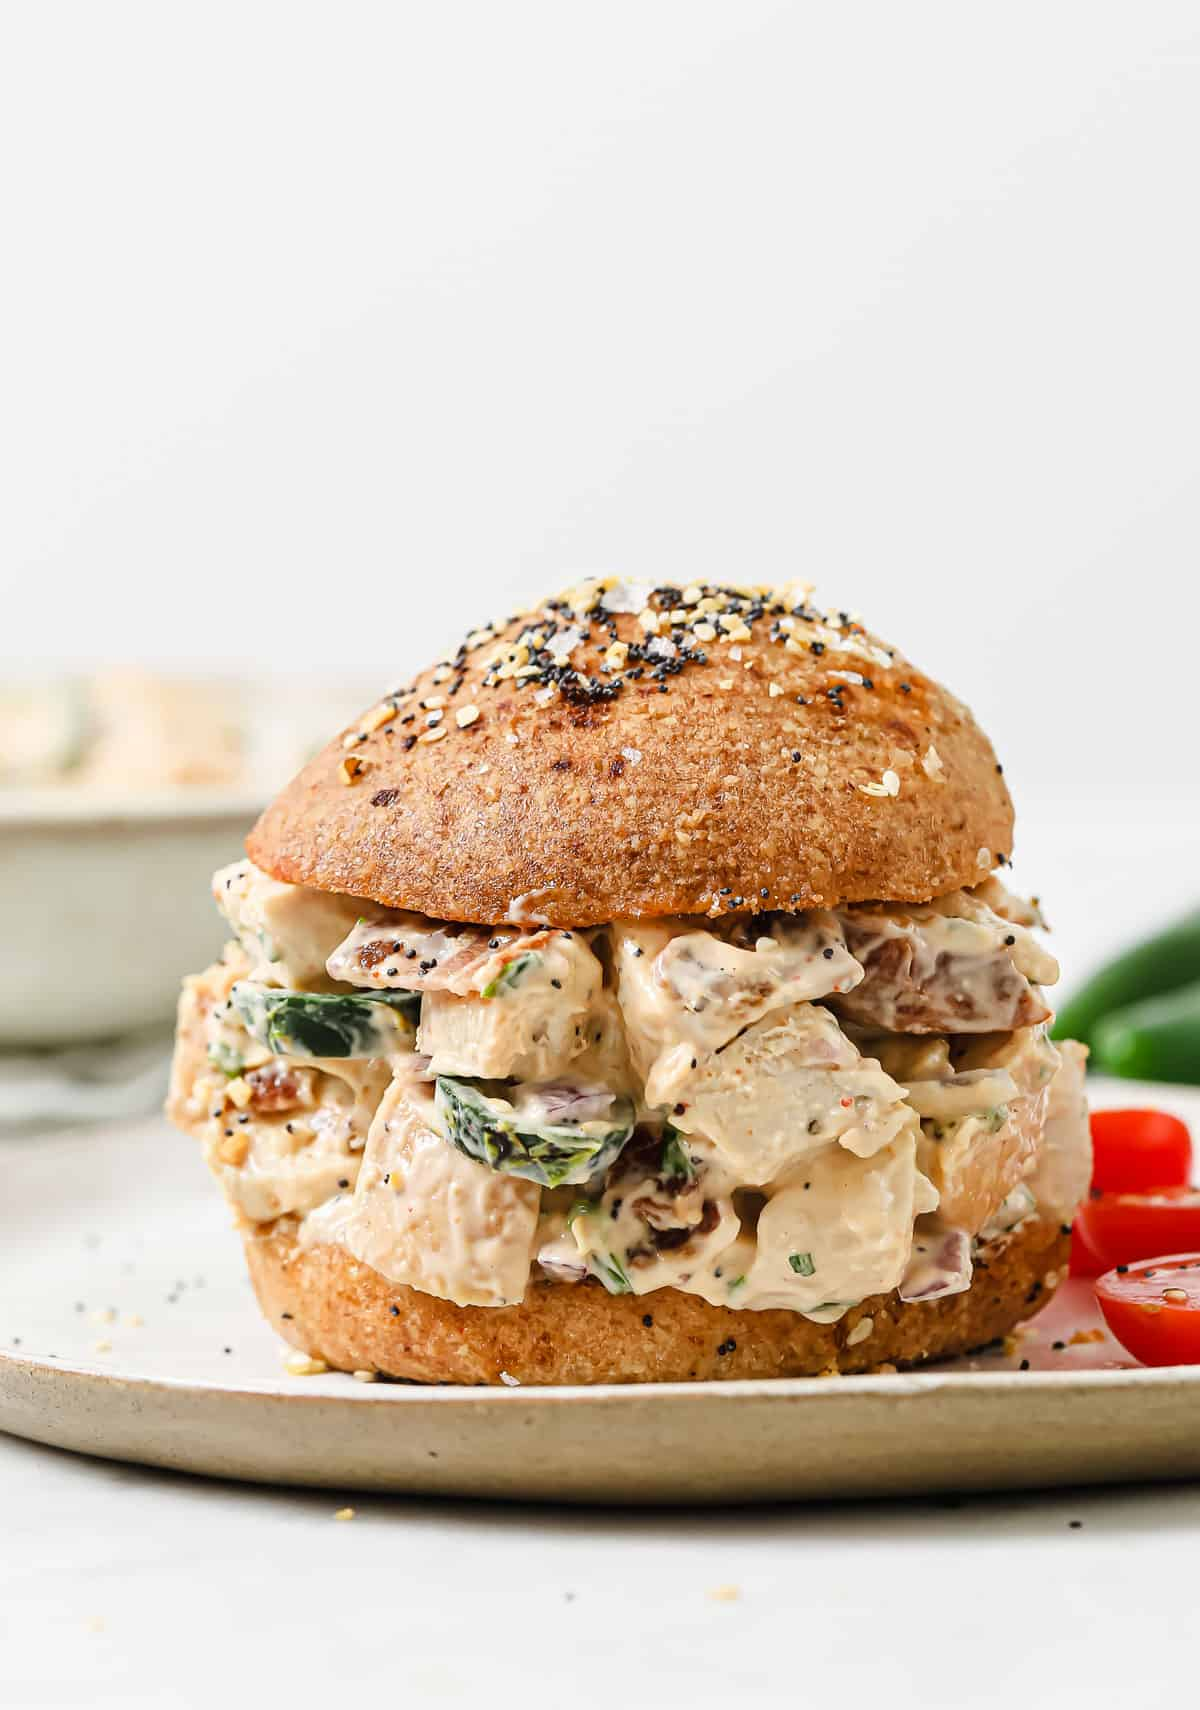 keto bread recipe piled high with jalapeno popper chicken salad